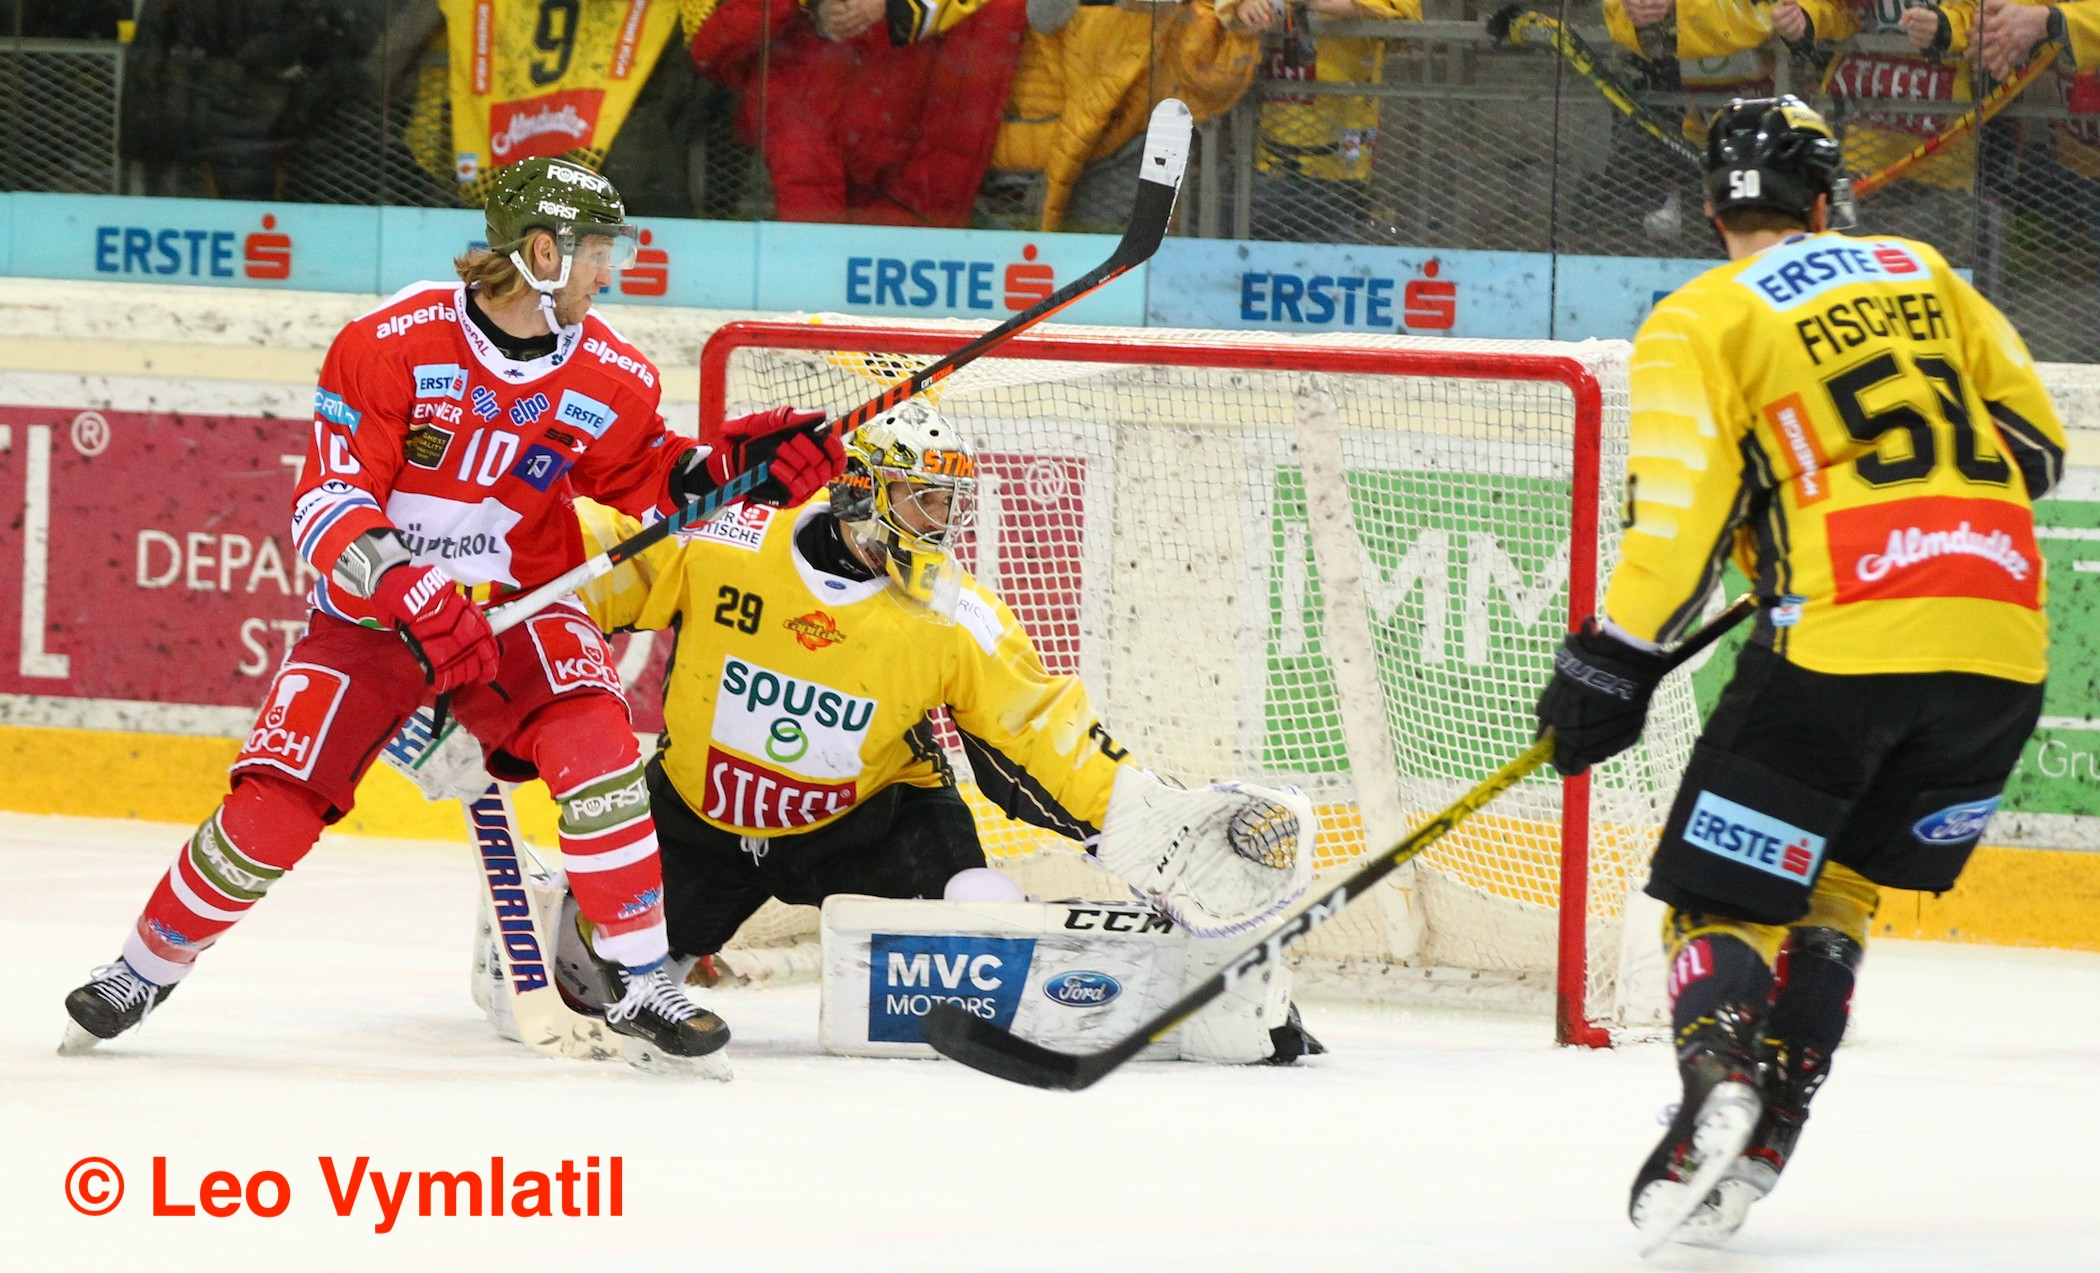 PH VIENNACAPITALS q4d6aw